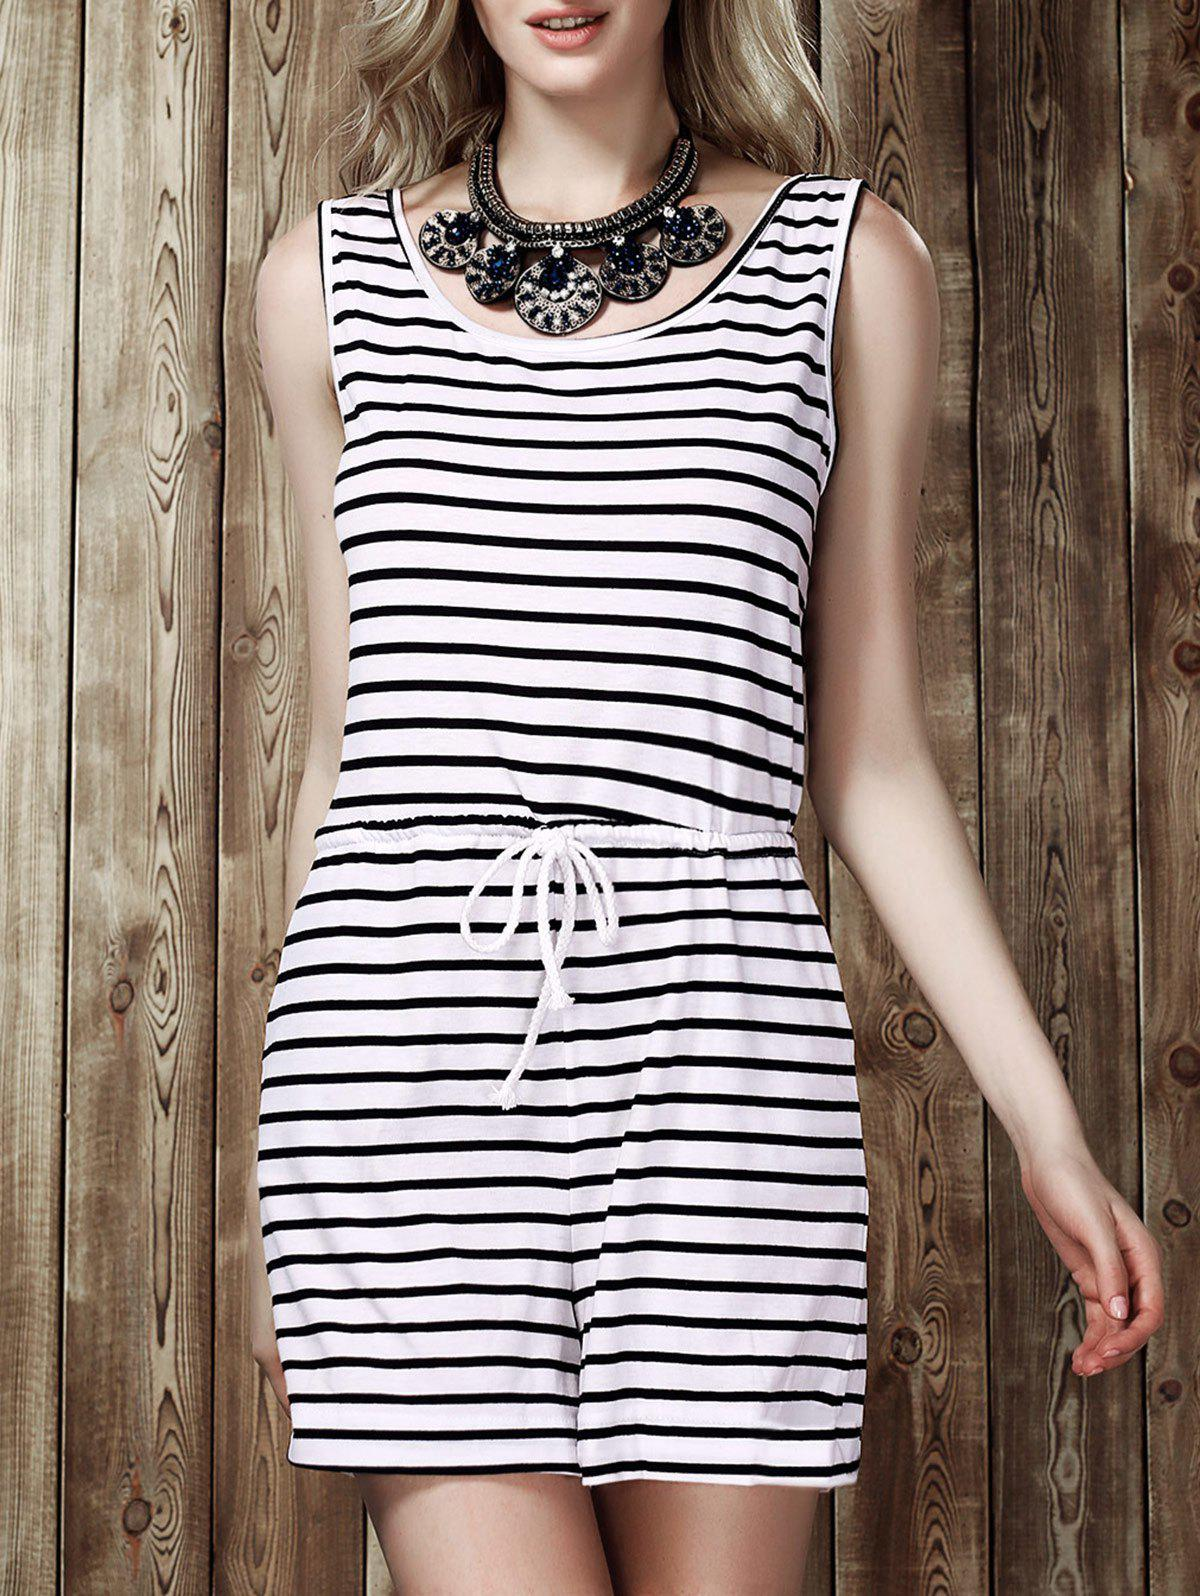 Leisure Style Scoop Neck Sleeveless Black and White Stripe Drawstring Women's Playsuit - WHITE/BLACK S